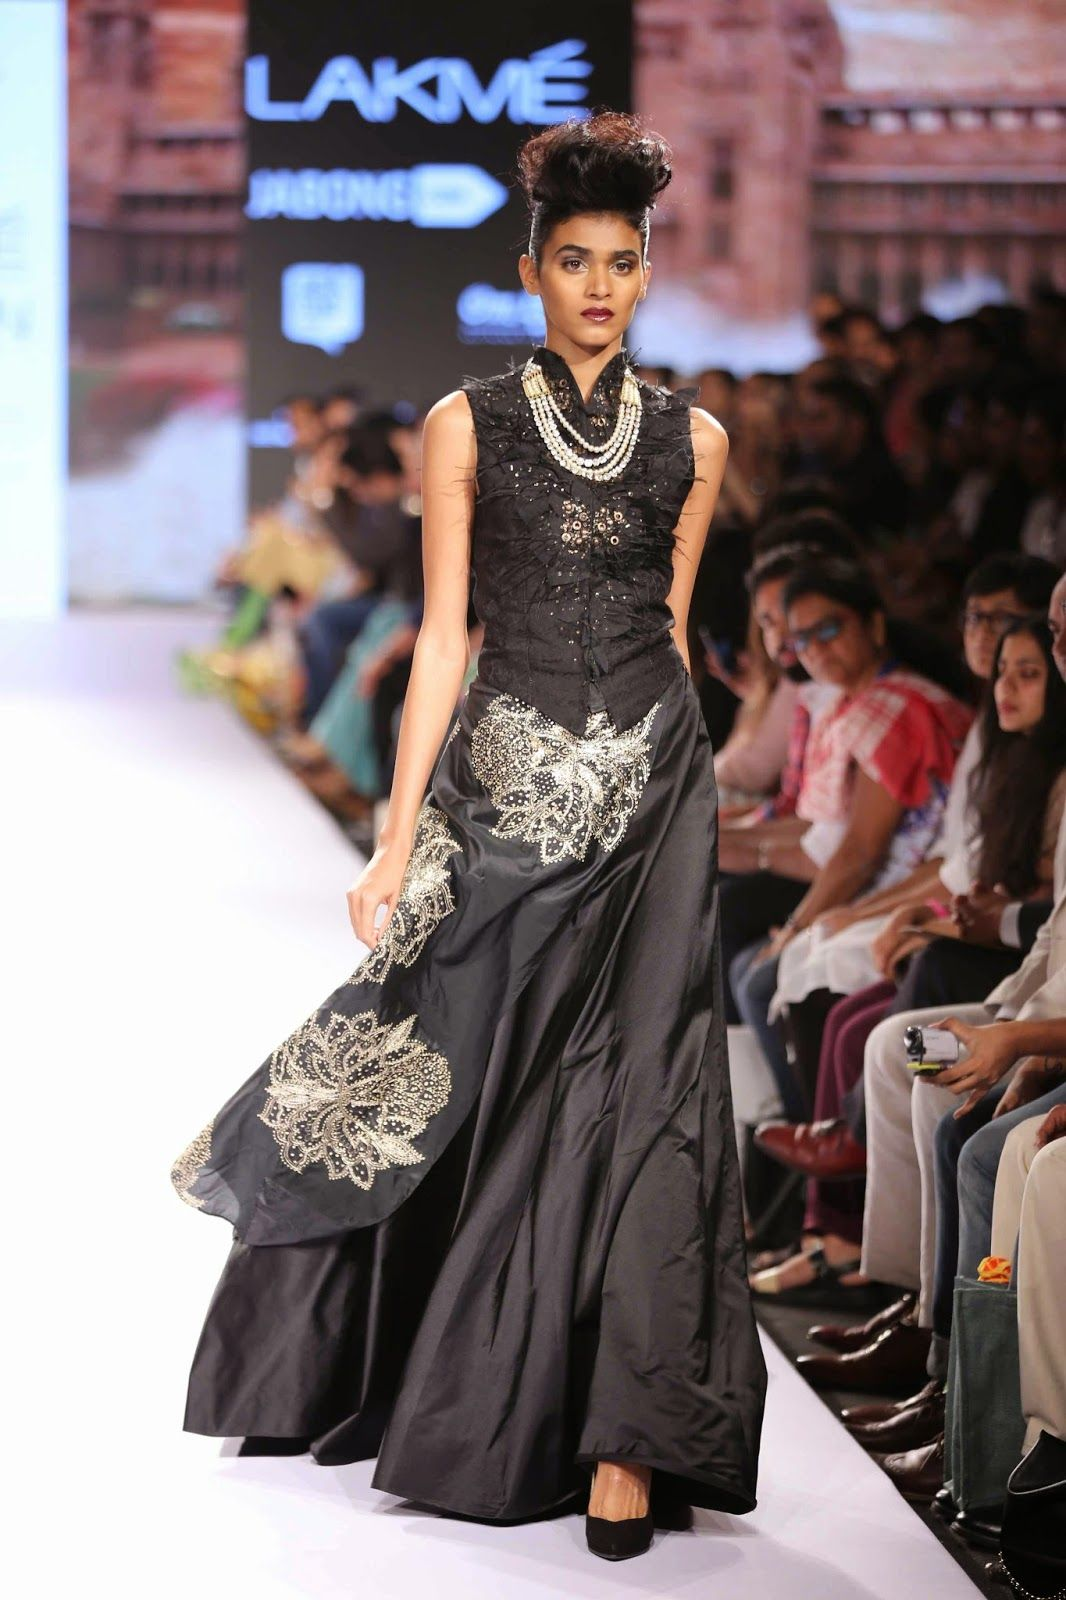 f70a0ead00e9 The Summer Resort 2015 edition of Lakmé Fashion Week offered a platform for  beginner and experienced designers to showcase their creative work.